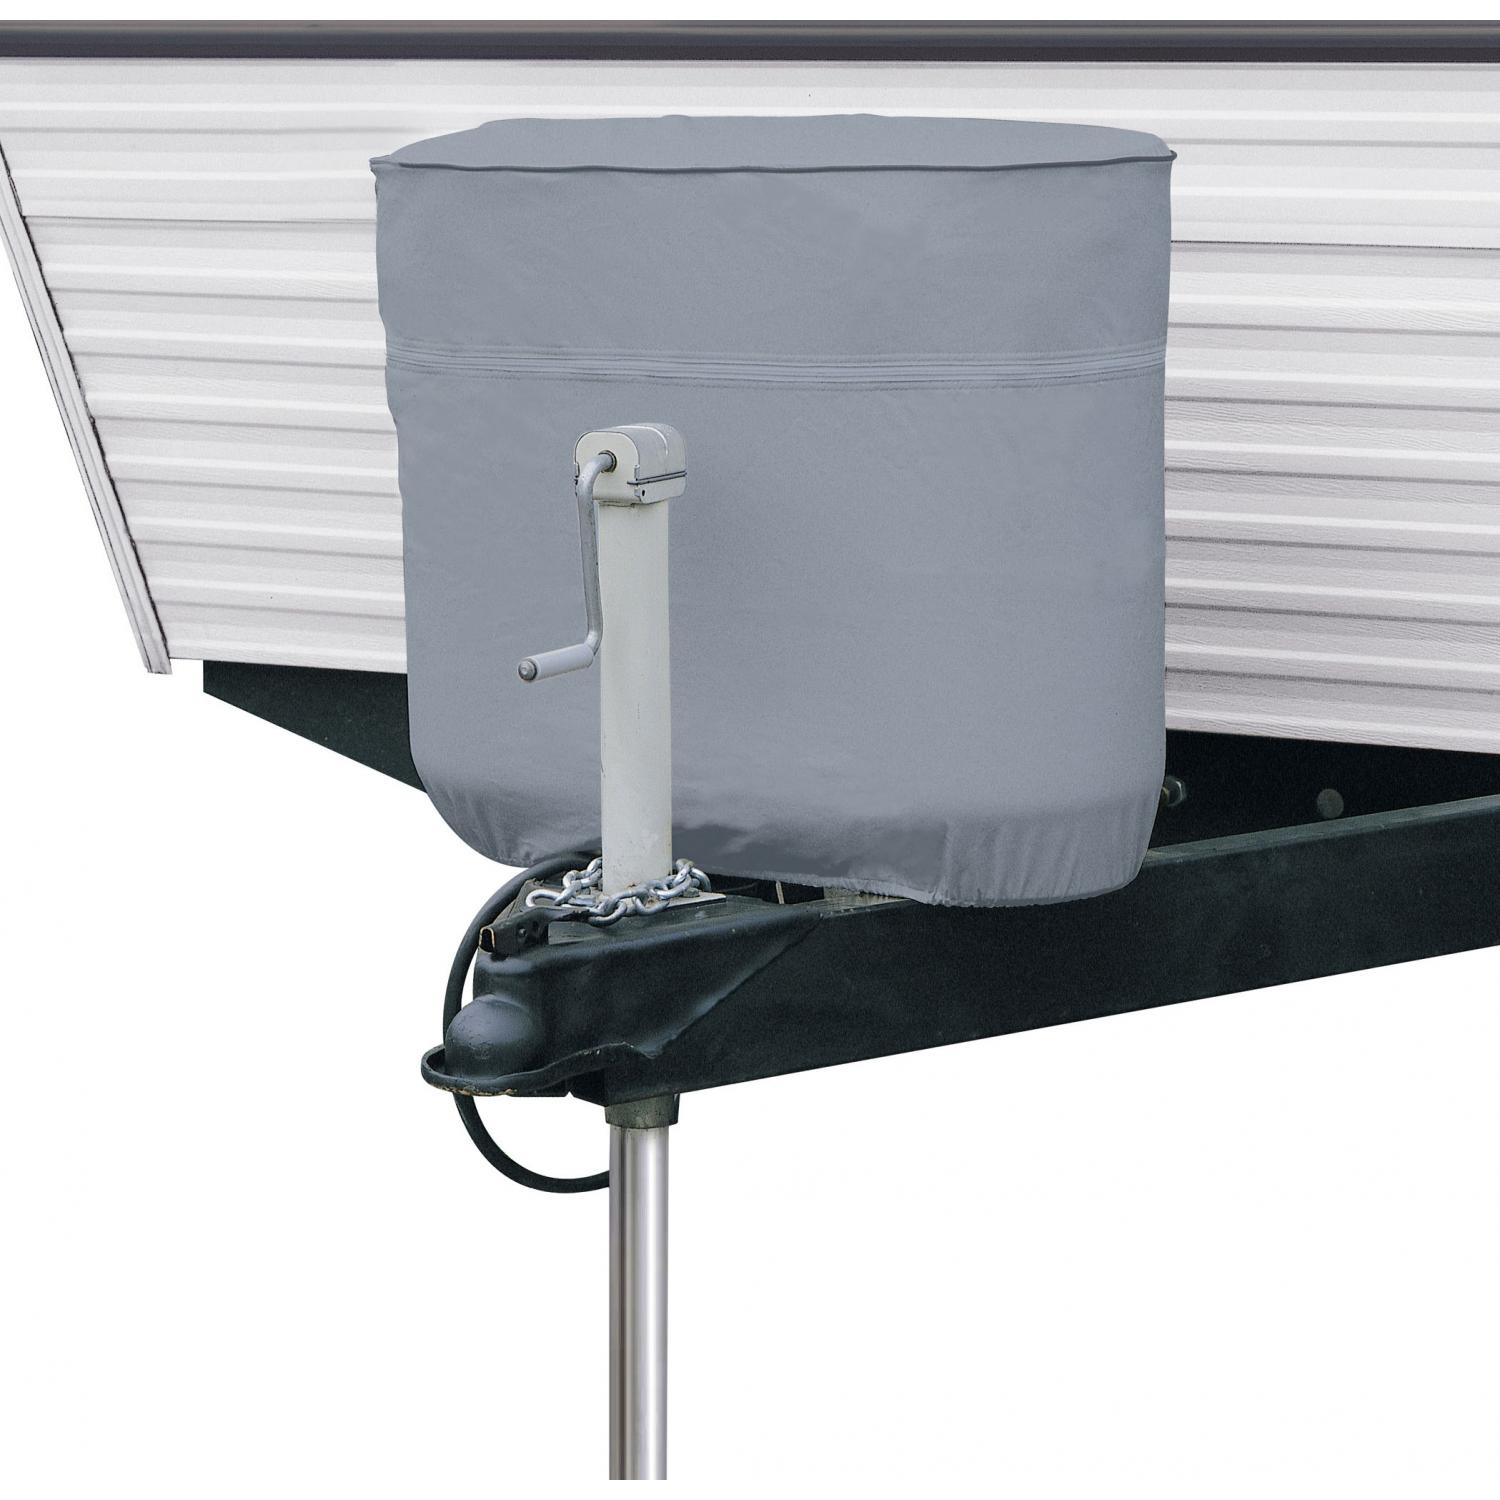 Classic Accessories RV Tank Cover - Grey - Model 3